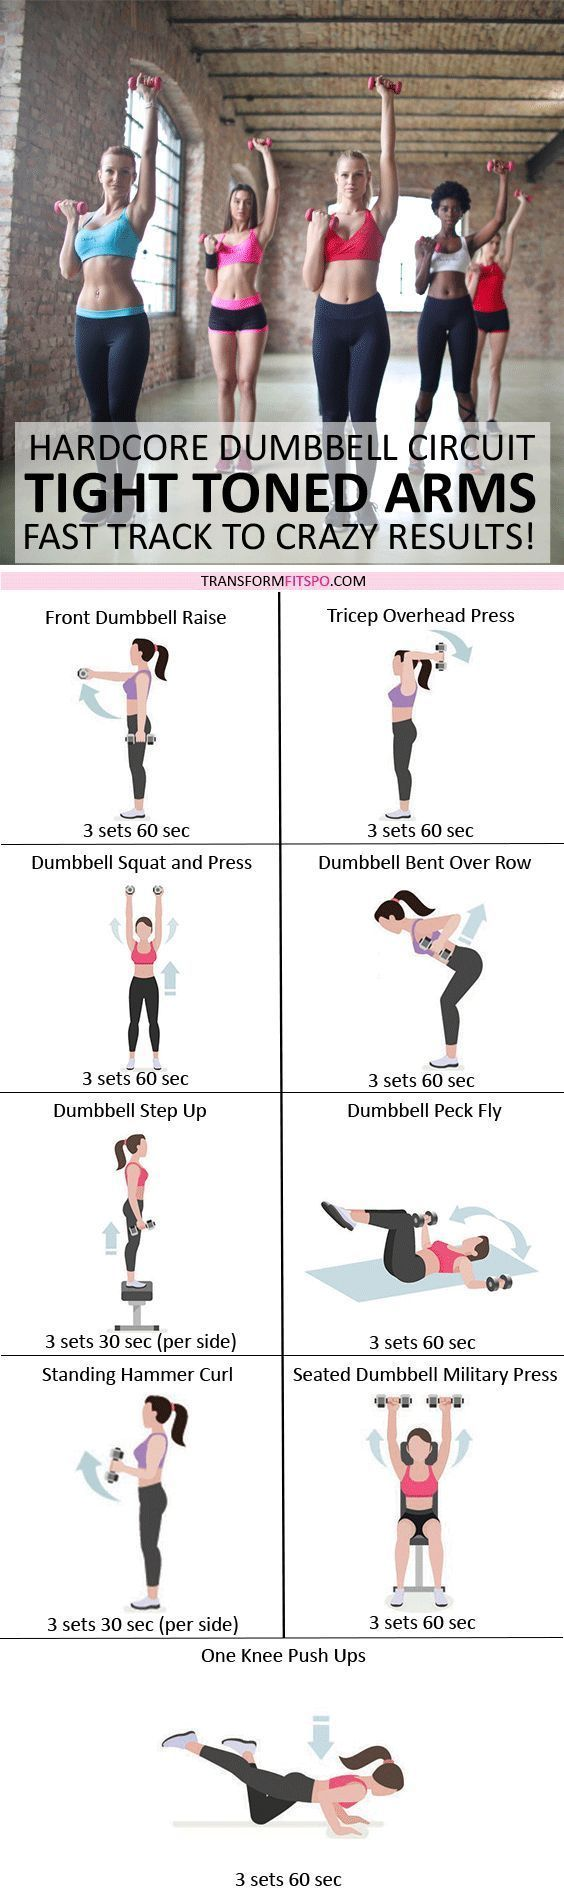 Tone And Tighten Your Arms Dumbbell Progressive Circuit To Get Chest Back Superset Workout Womensworkout Femalefitness Share Repin If This Helped